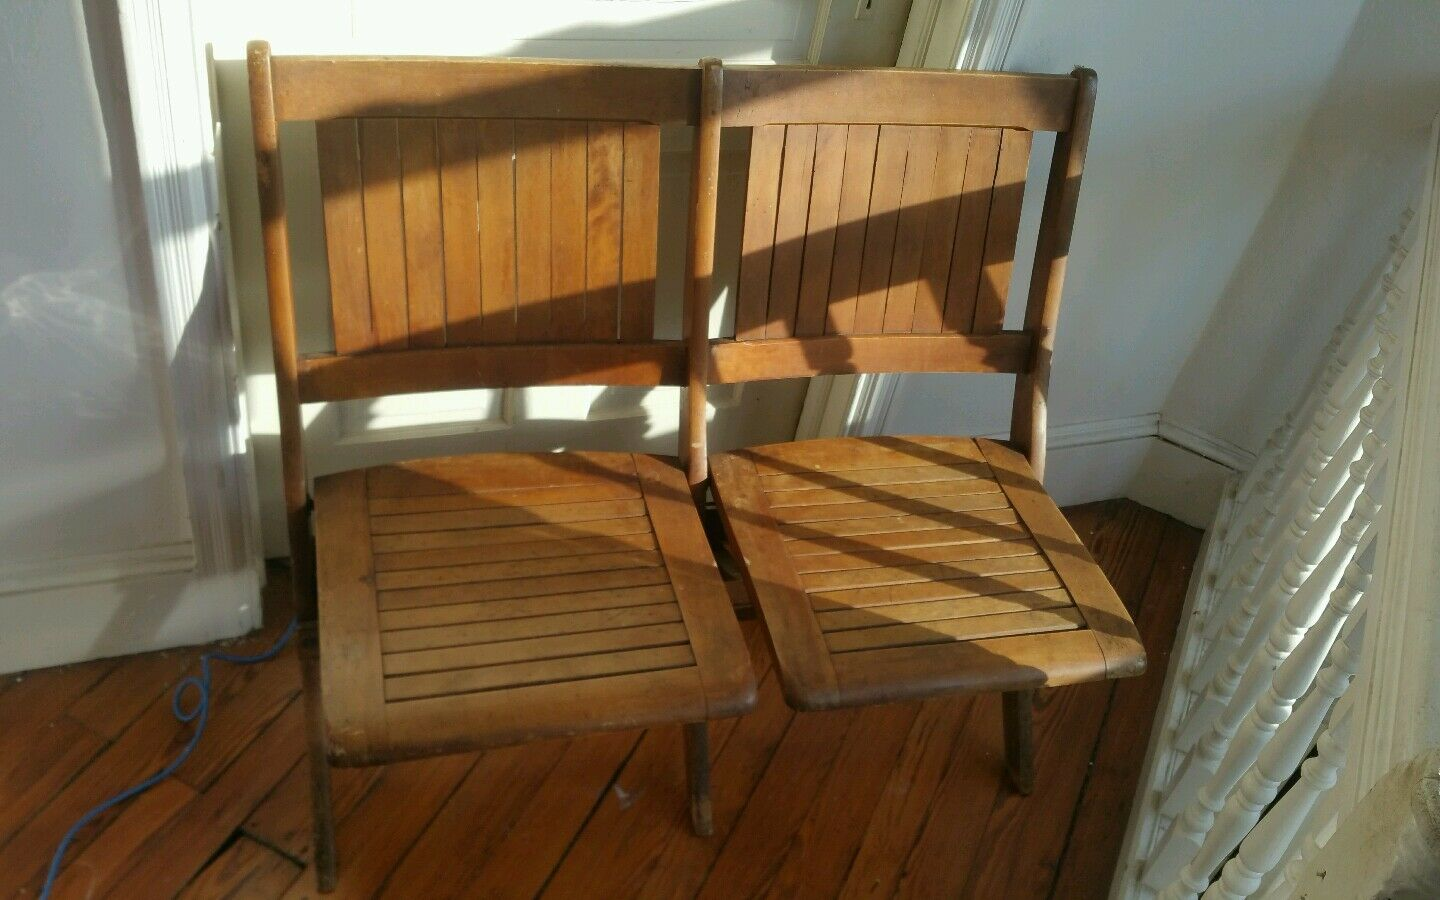 WOODEN FOLDING Bench Chairs Vintage - $99.95 | PicClick